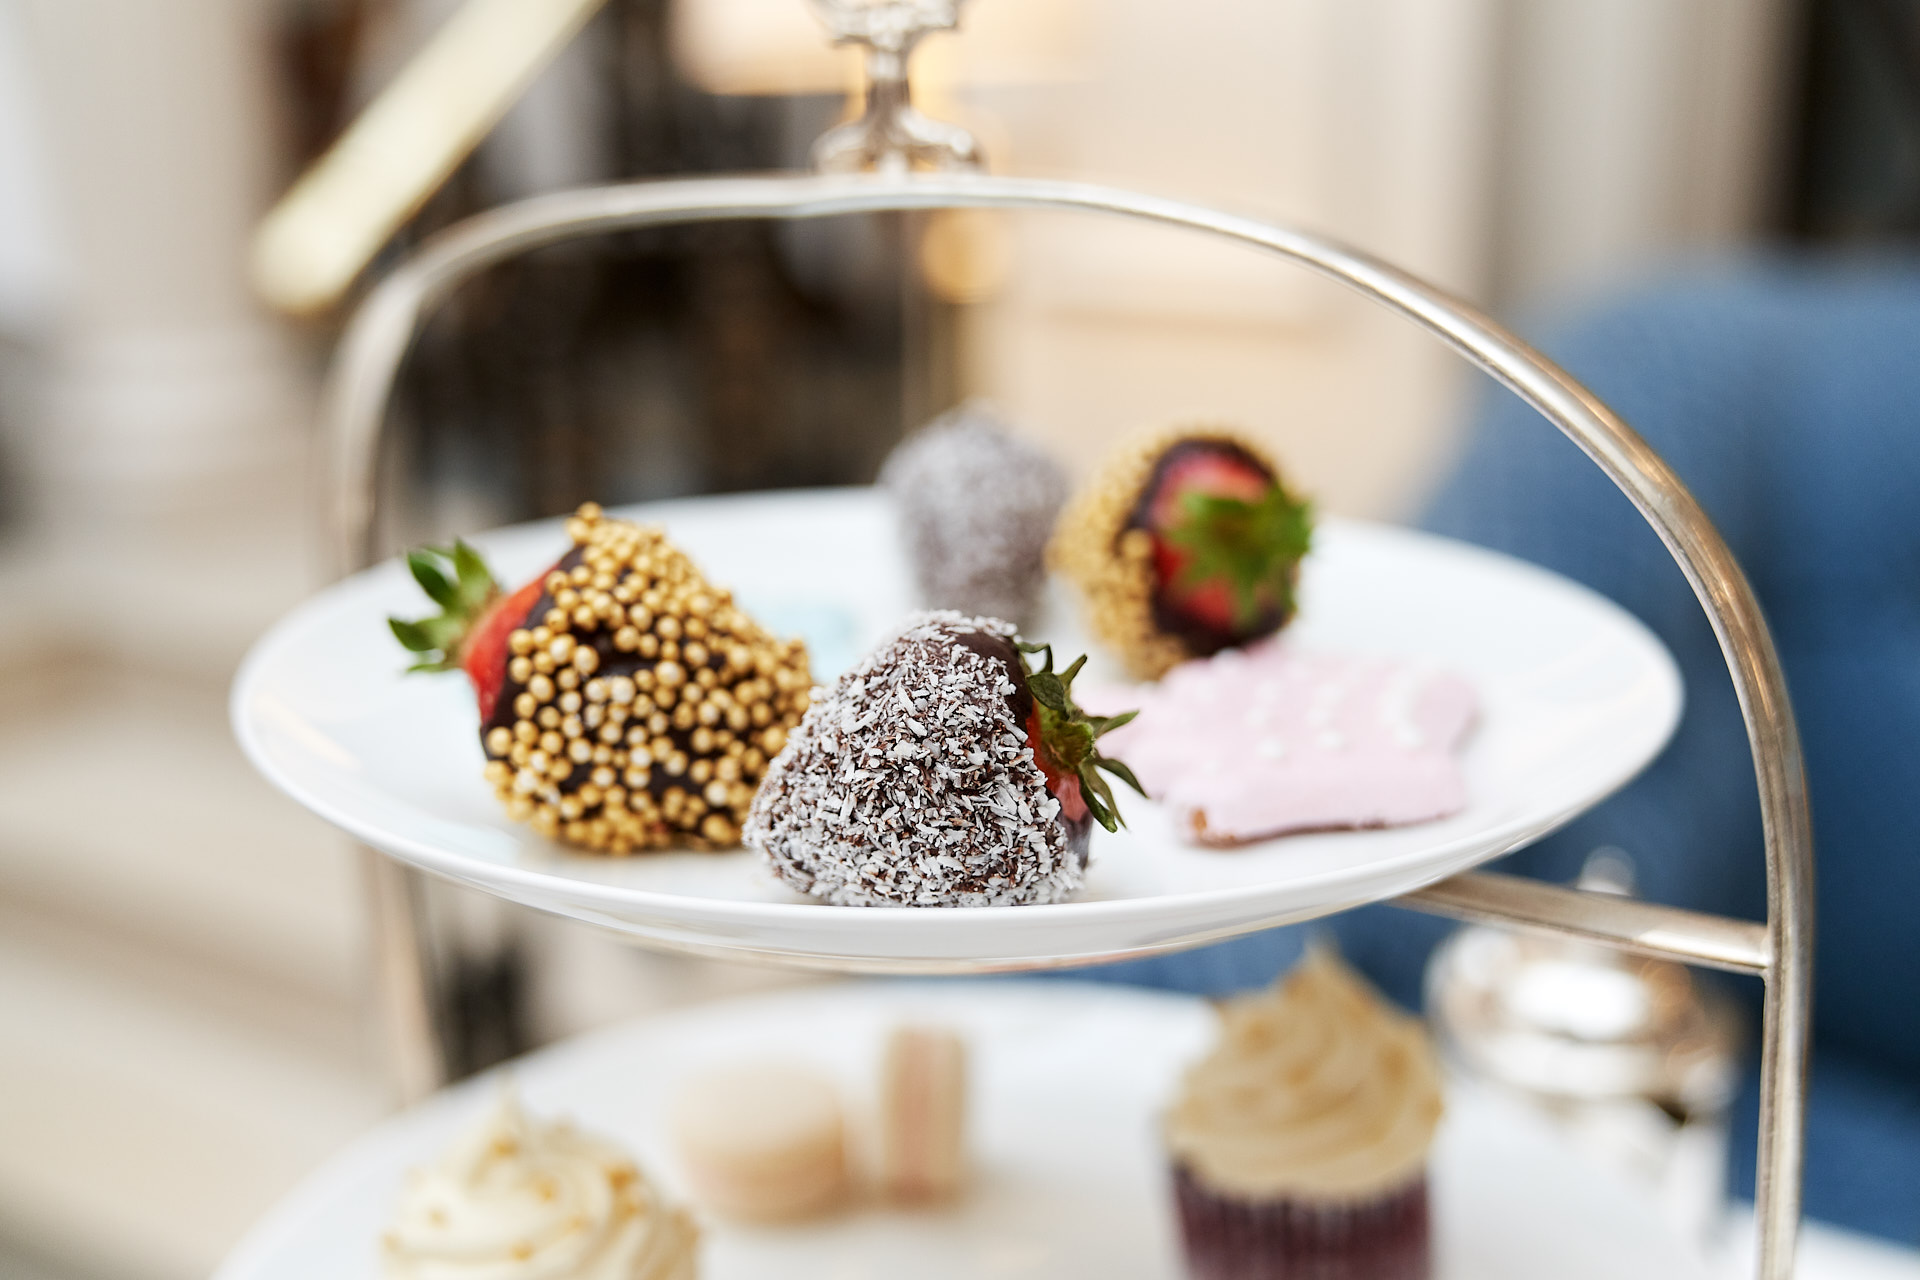 Afternoon tea in The Lanesborough